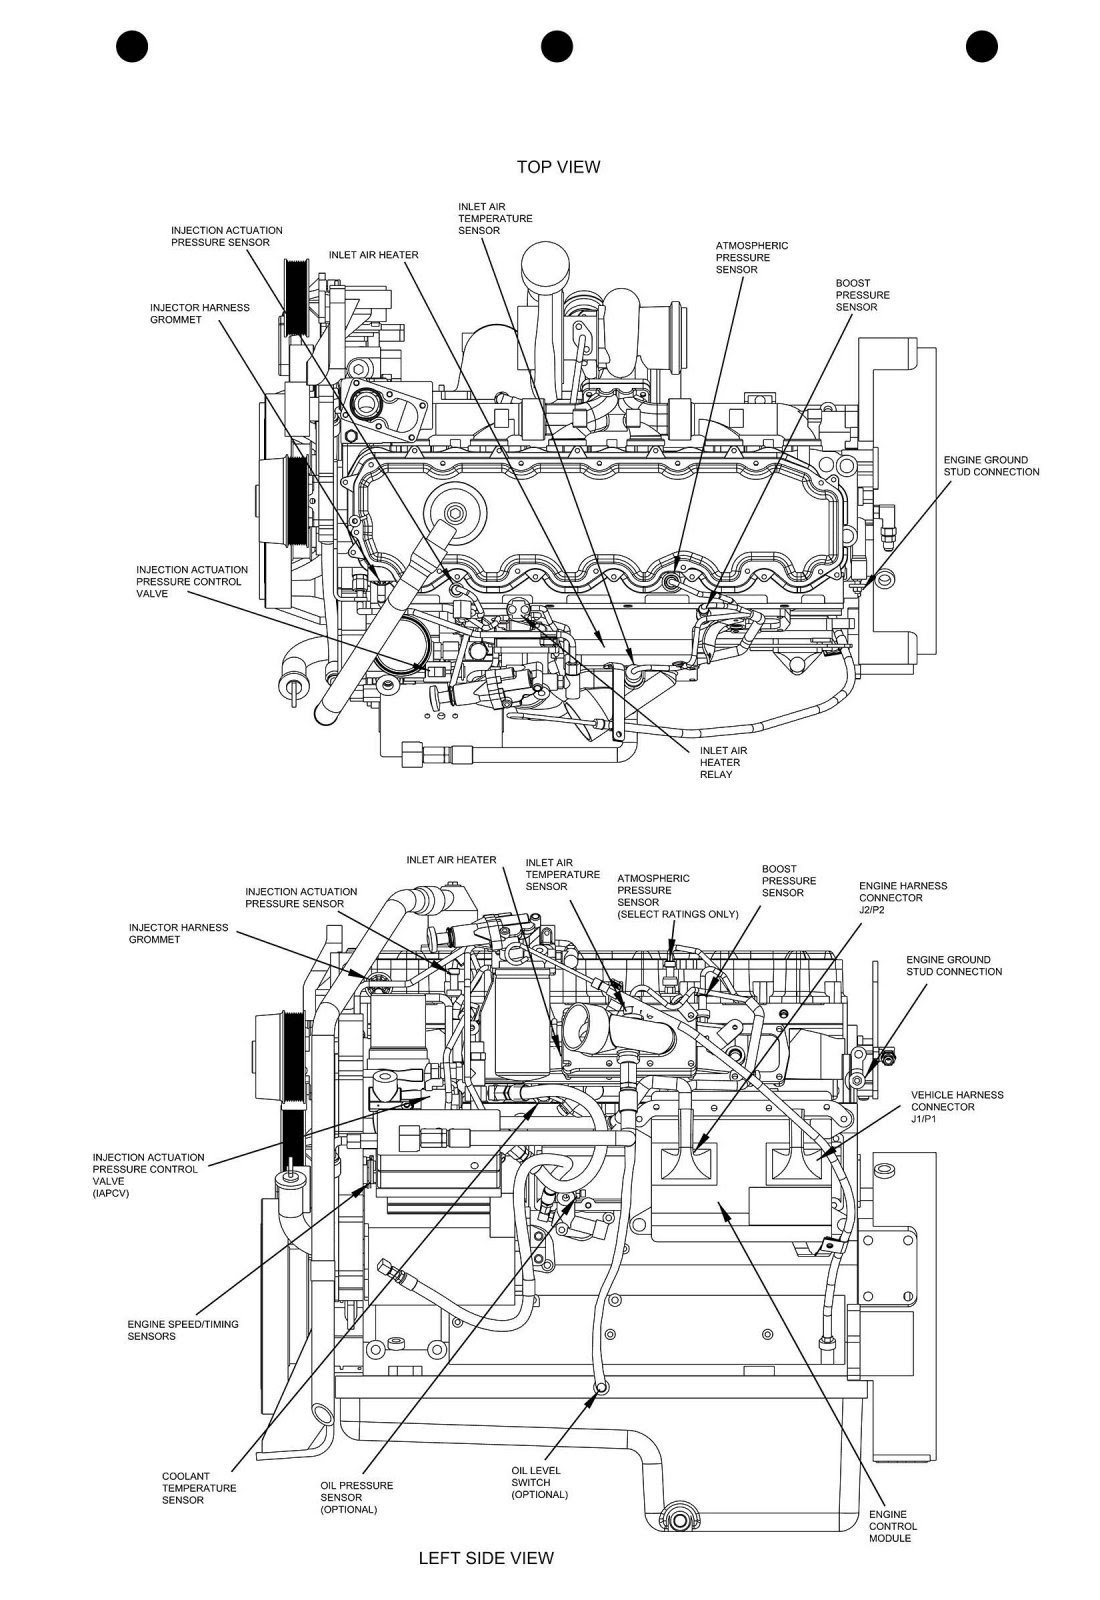 DIAGRAMME de Fan Hub 3126 Caterpillar Engine Diagram